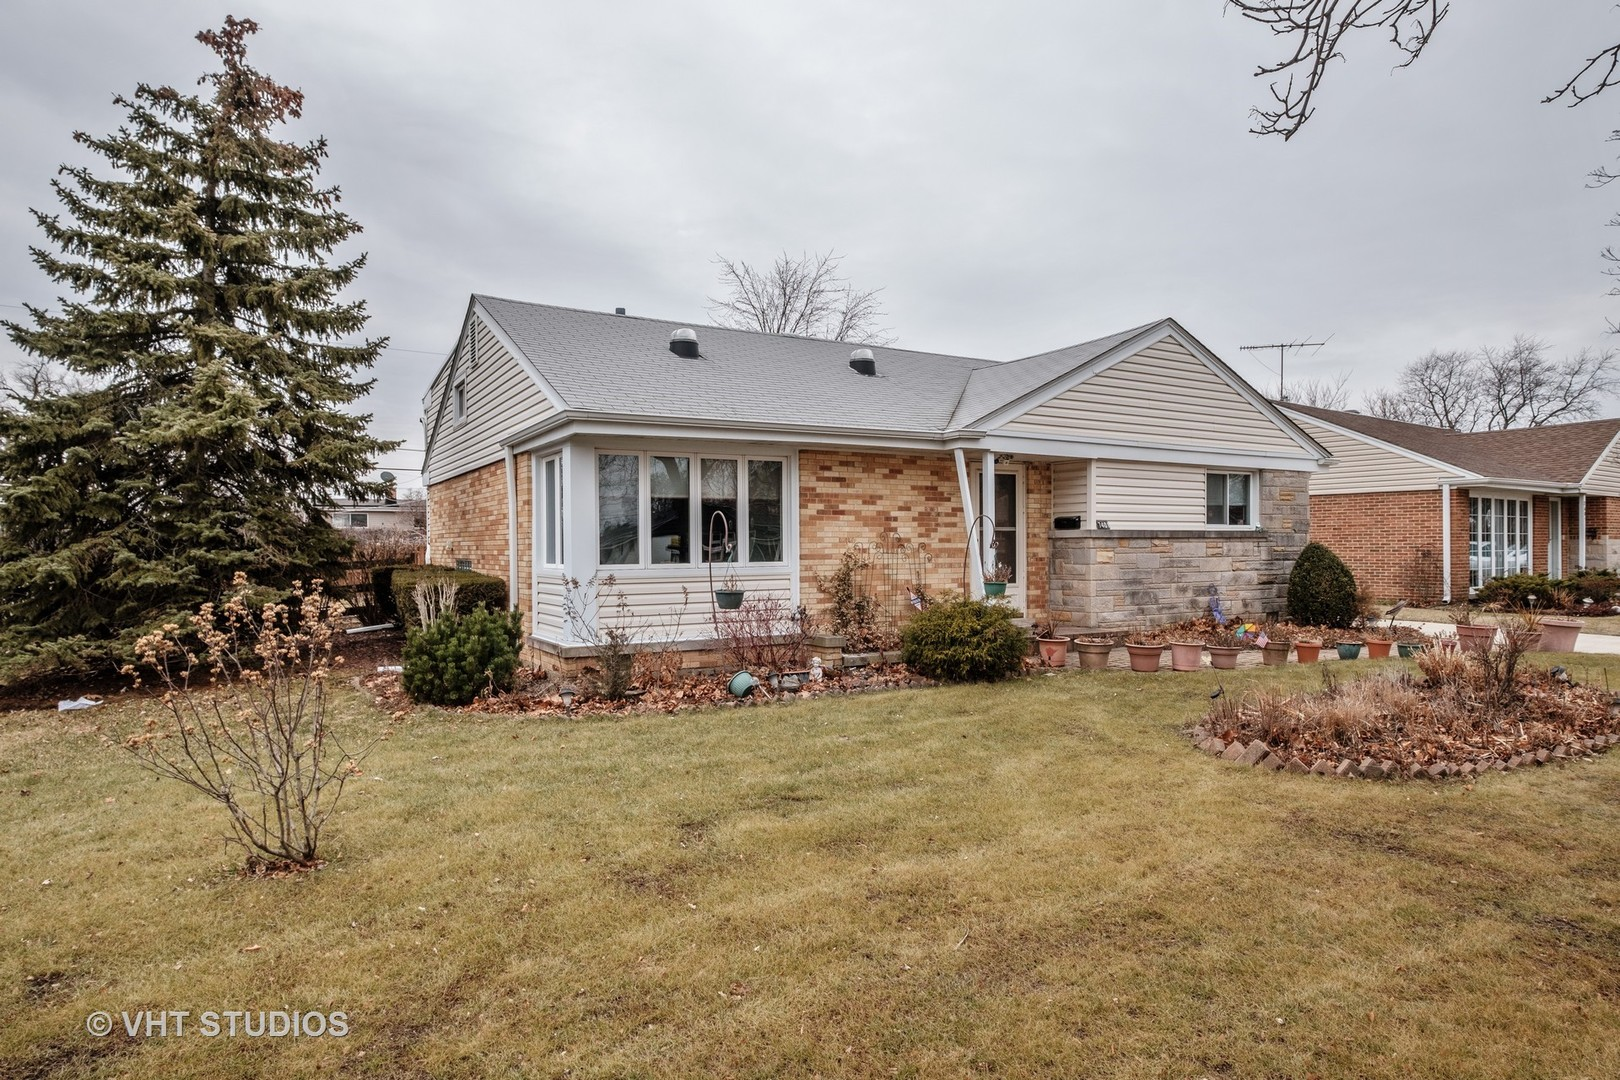 oketo mature singles Sold - 4951 north oketo avenue, harwood heights, il - $308,000 view details, map and photos of this single family property with 4.